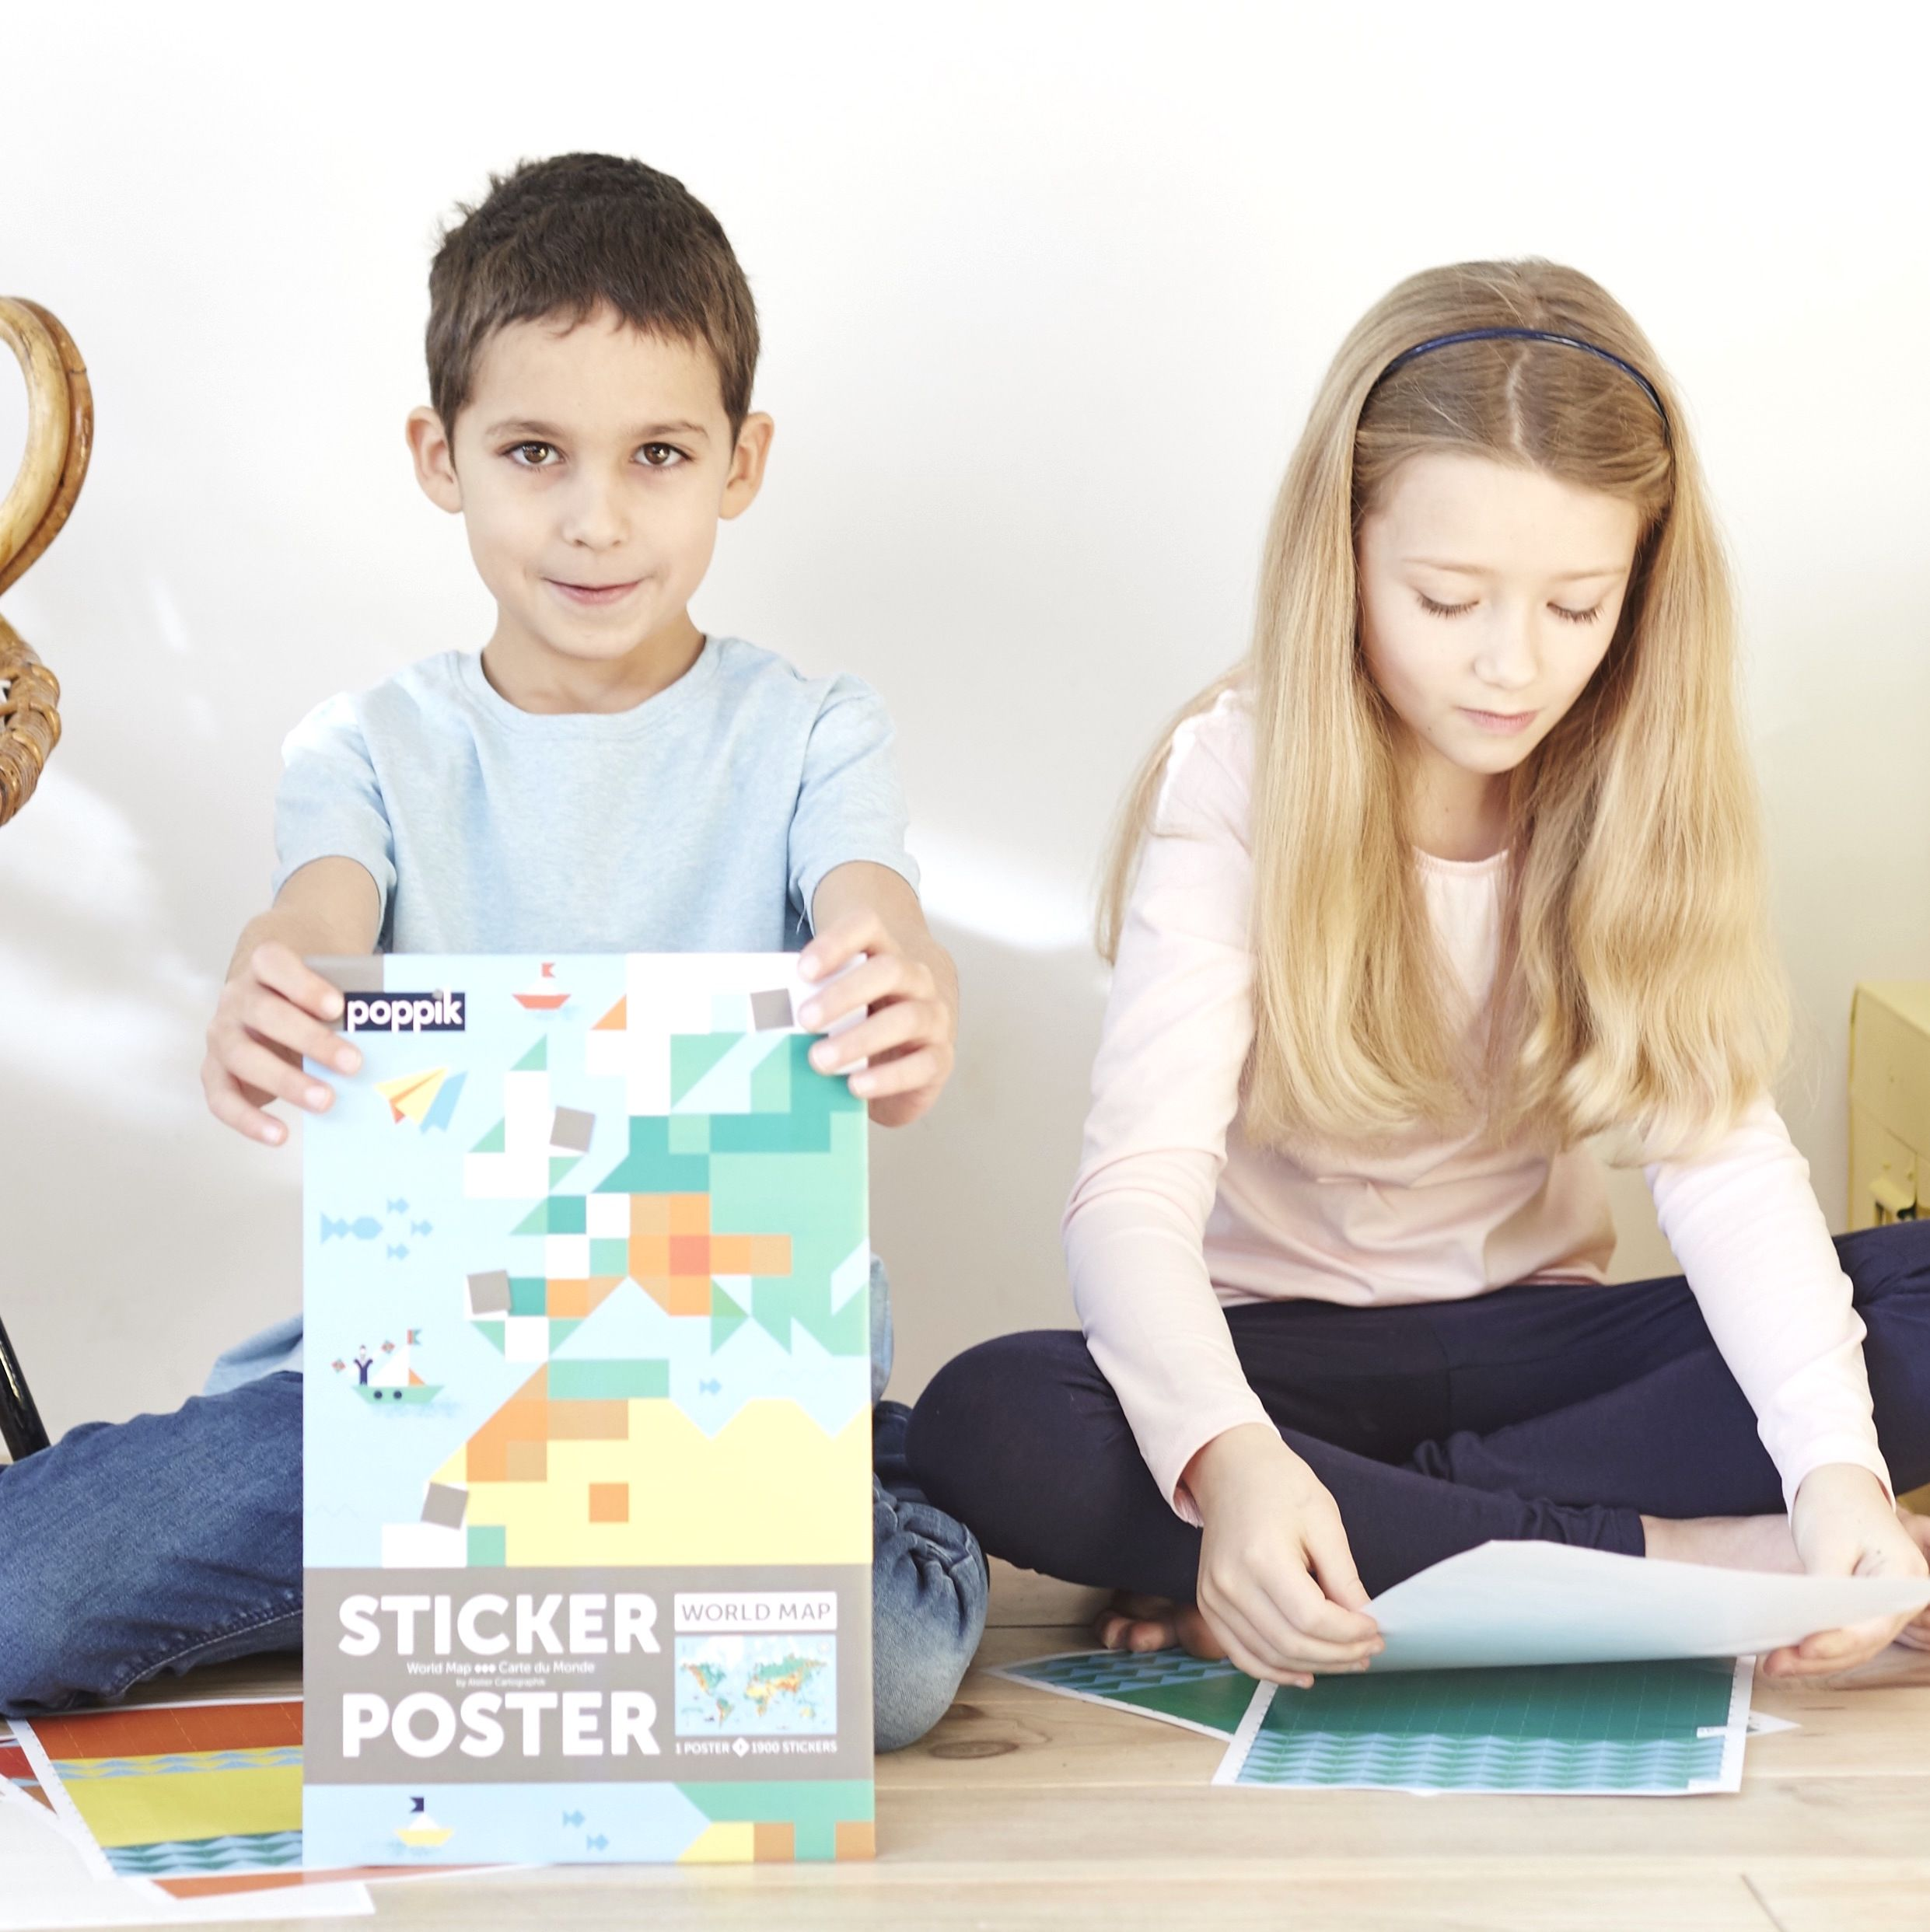 Stick the stickers on the poster and discover a beautiful